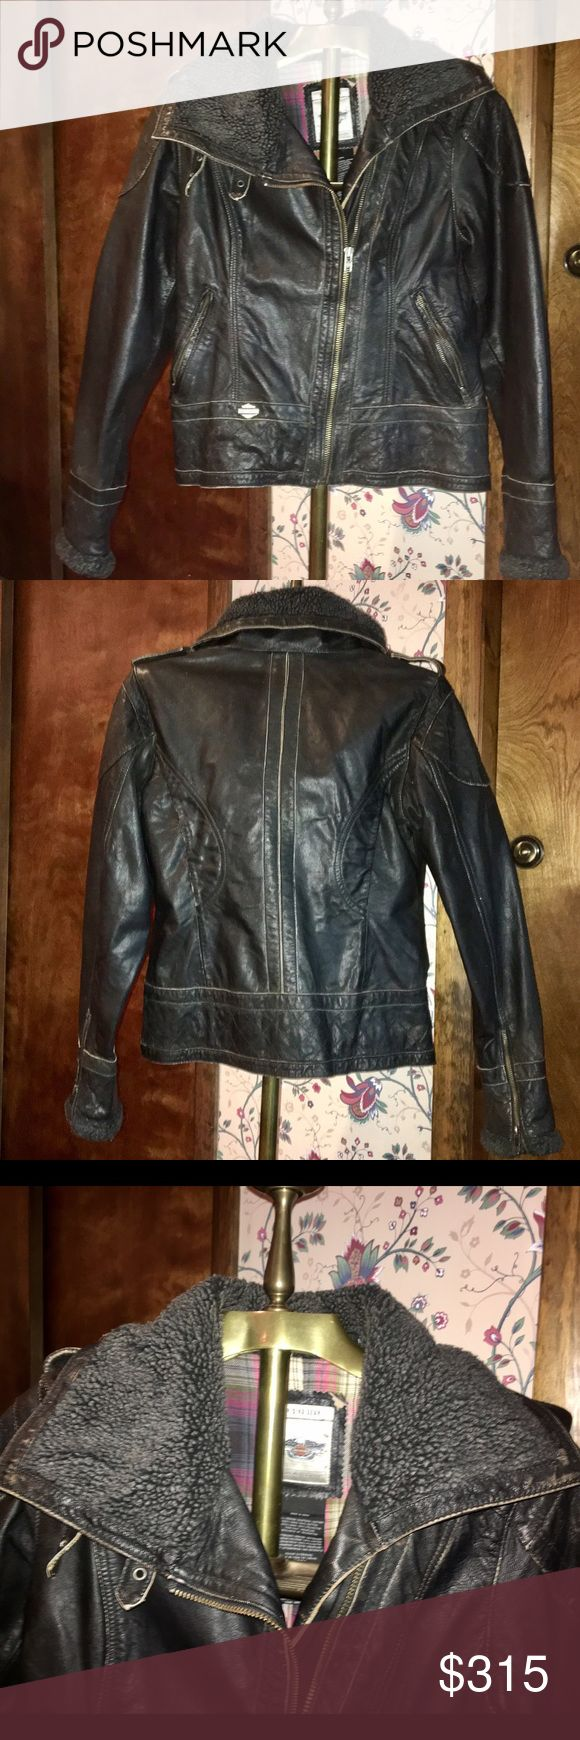 Gorgeous Harley Davidson leather jacket! 😄😍 Gorgeous NWOT leather Harley Davidson jacket!  Lined with plaid flannel, flattering fit, fleece around neck...zips up high to really protect from wind!  Cool 😎 angled zipper, zip up wrists...never worn! Received as 🎁...just not my style 😫women's small.  Metal Harley Davidson logo on front left bottom of coat 😍 Harley-Davidson Jackets & Coats